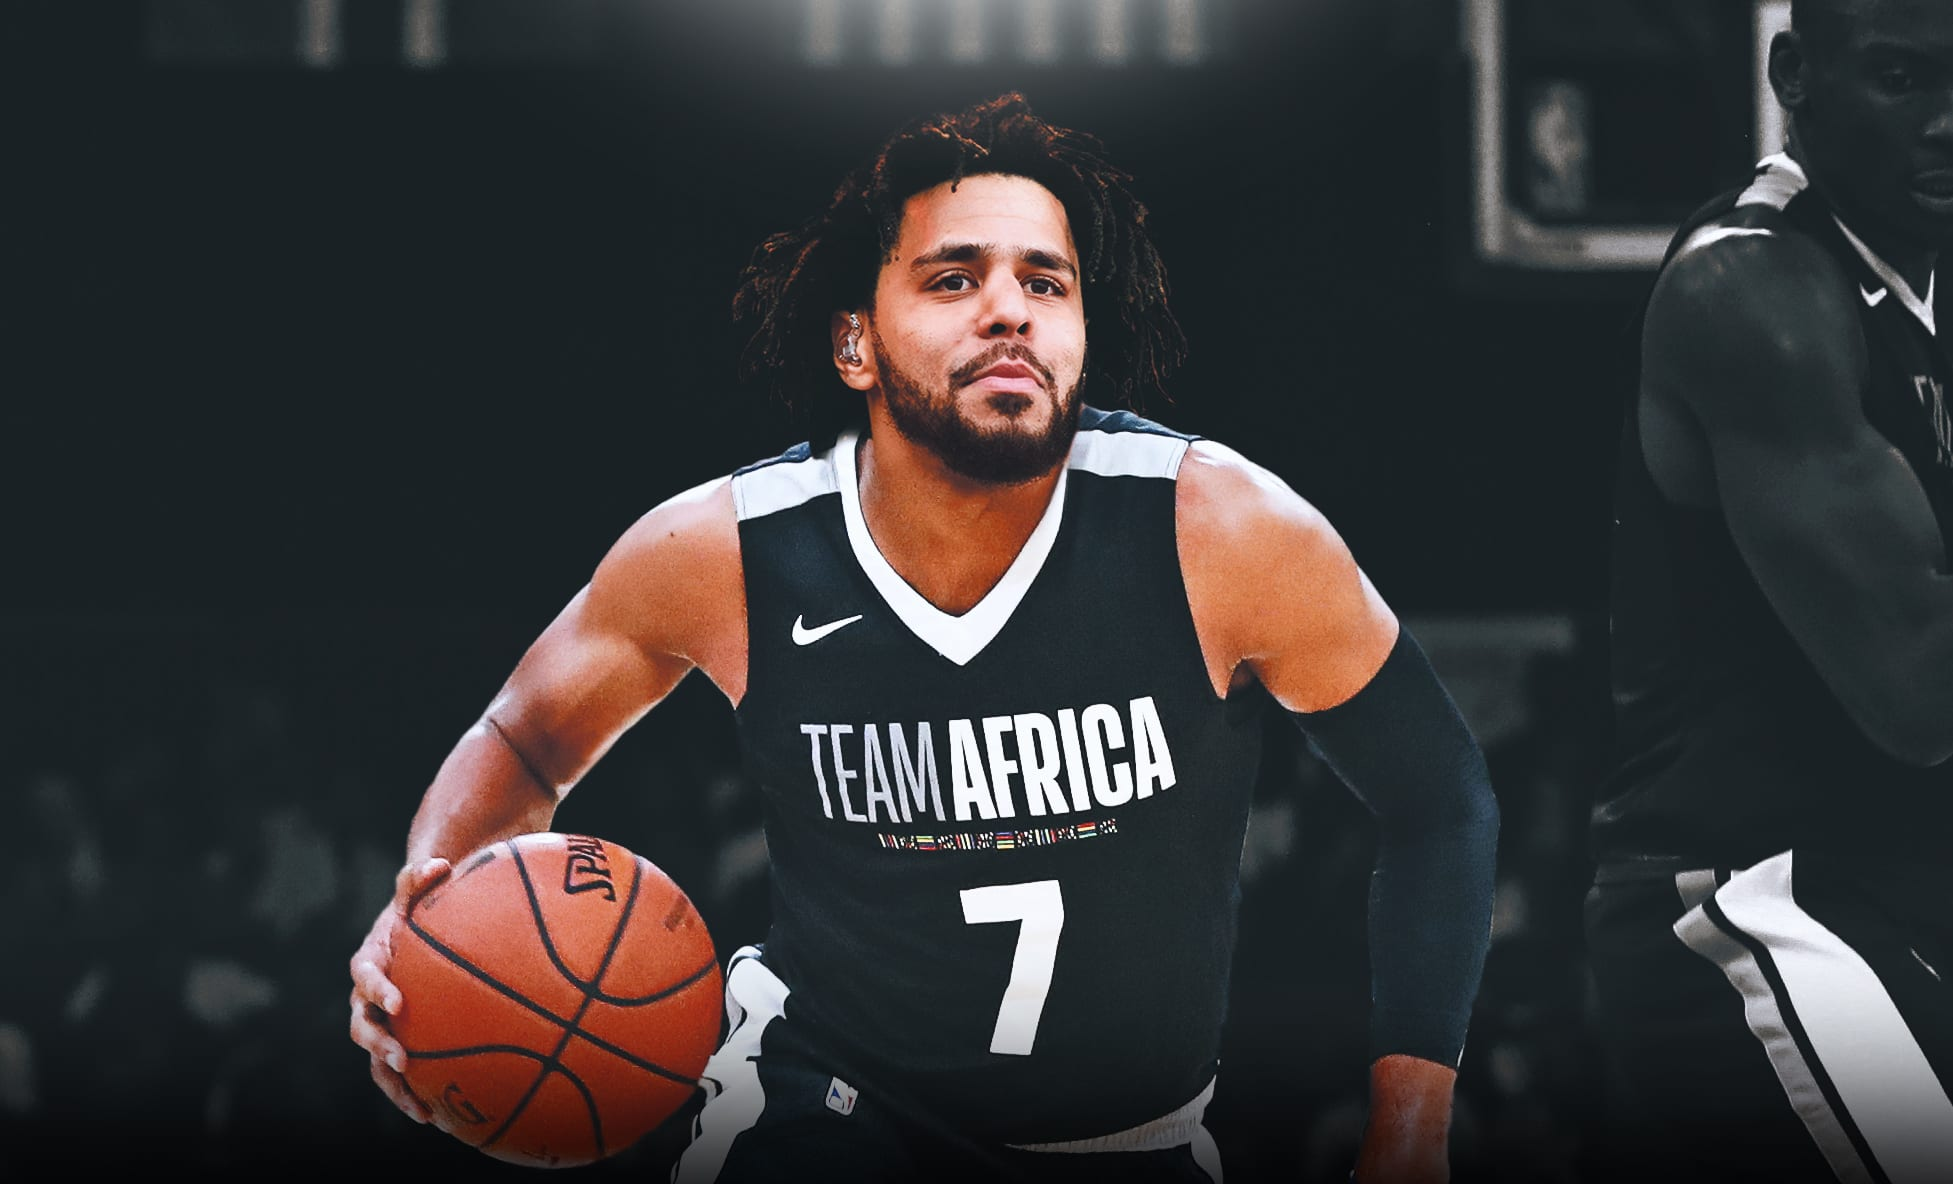 J. Cole to Play Professional Basketball in Africa's Top League